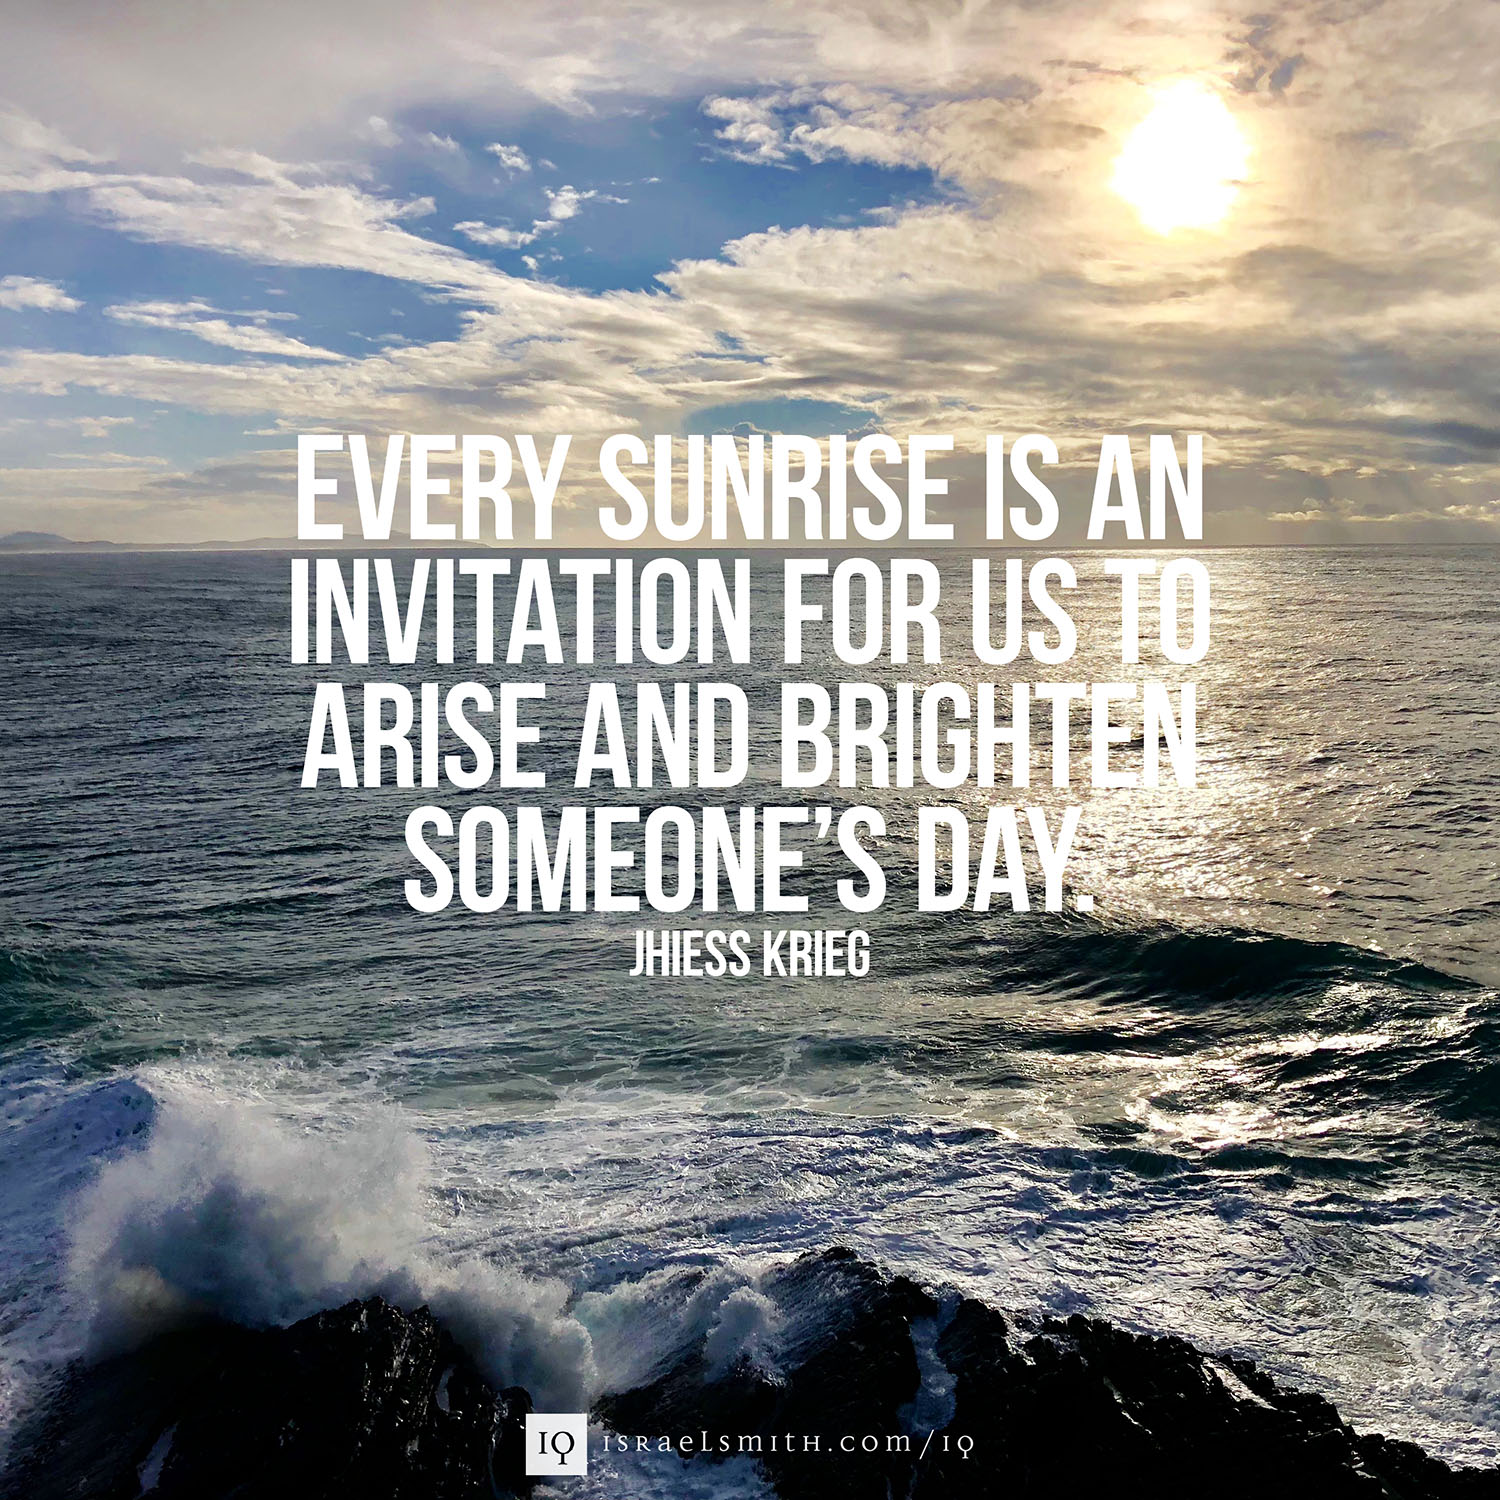 Every sunrise is an invitation